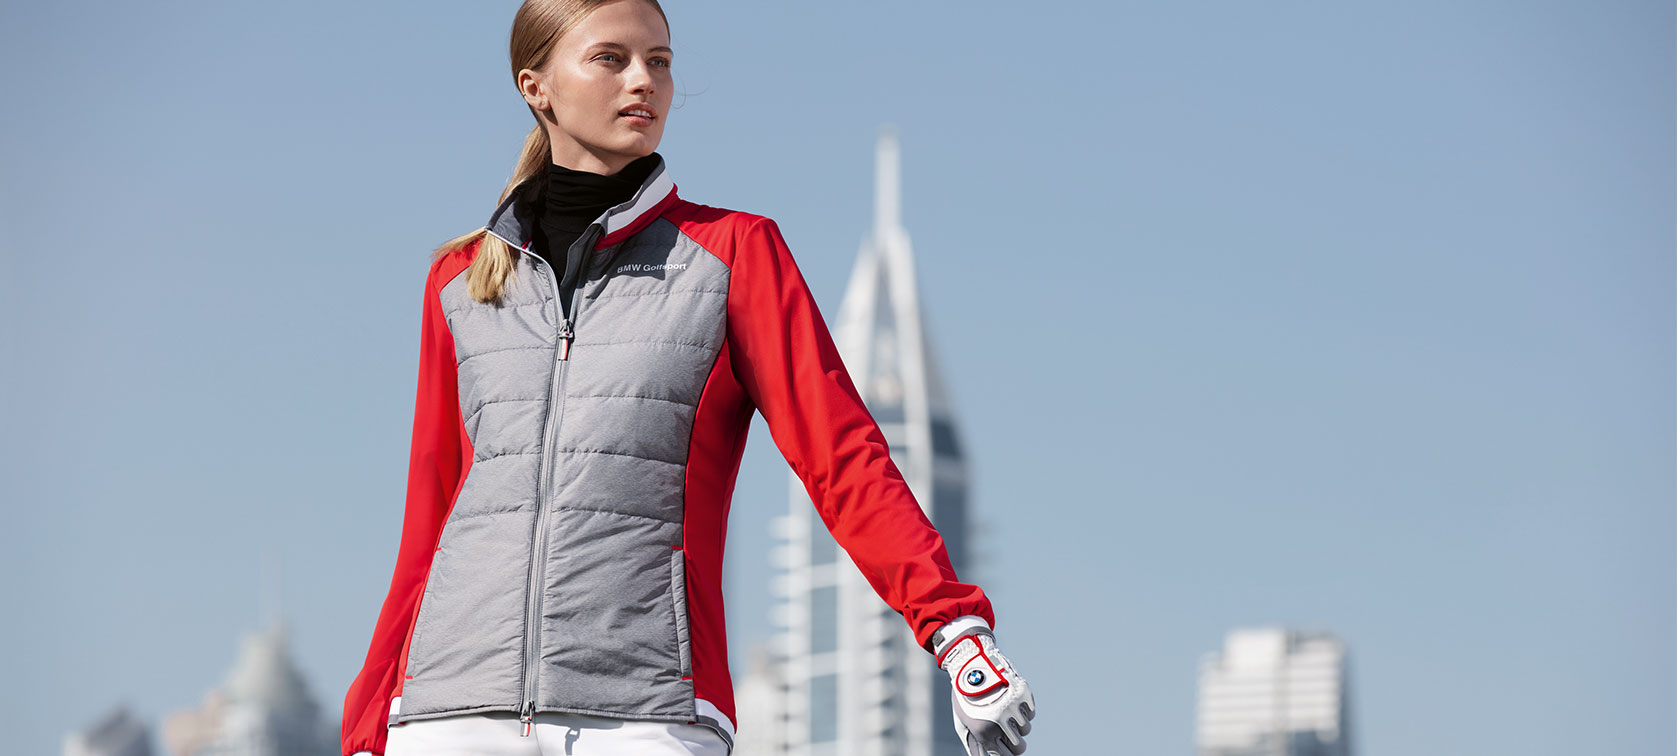 The young woman in the picture presents premium articles from the BMW Golfsport Collection against the backdrop of a big city skyline.